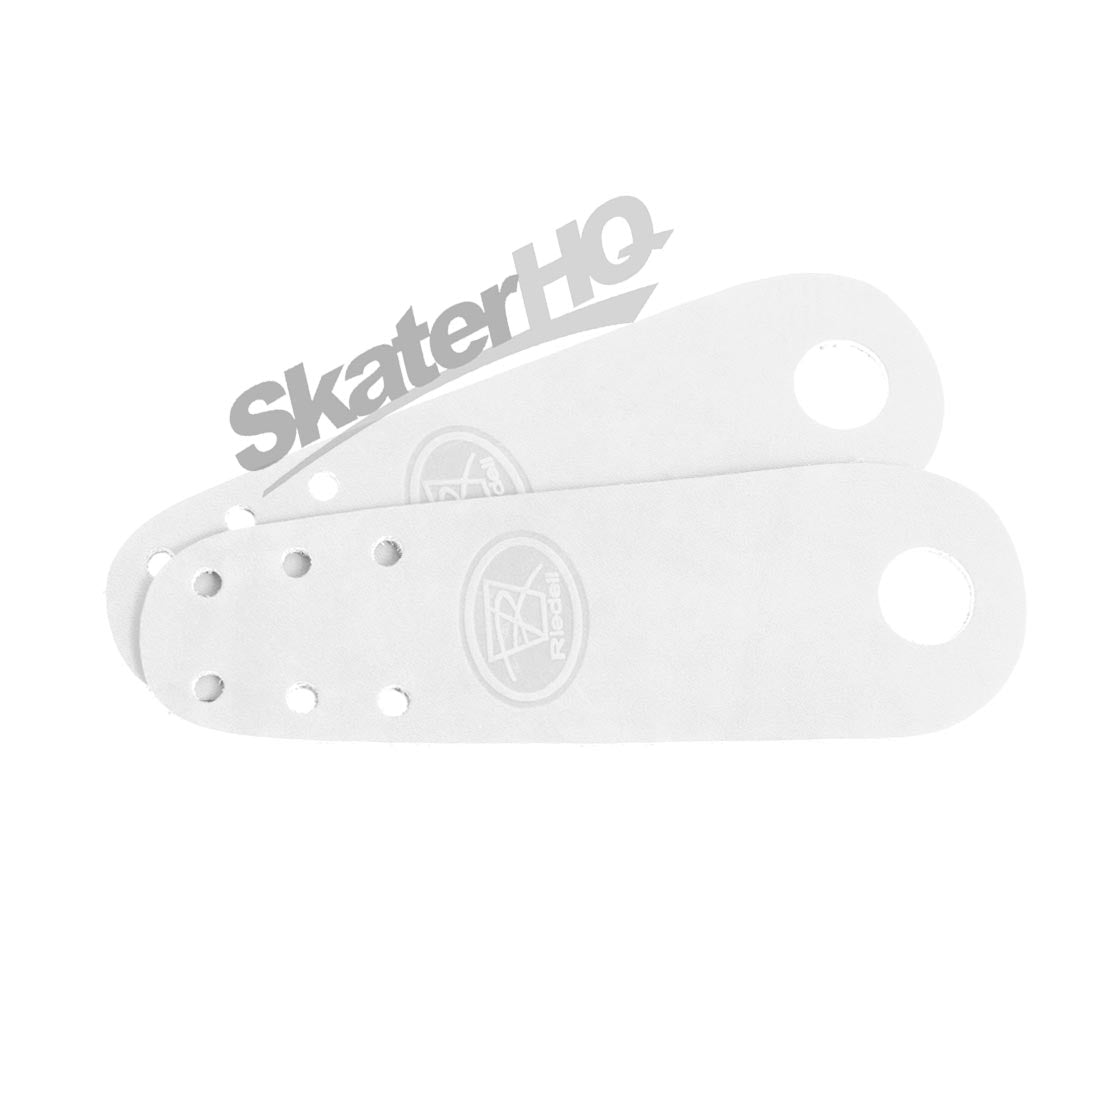 Riedell Leather Toe Guard 2pk - White